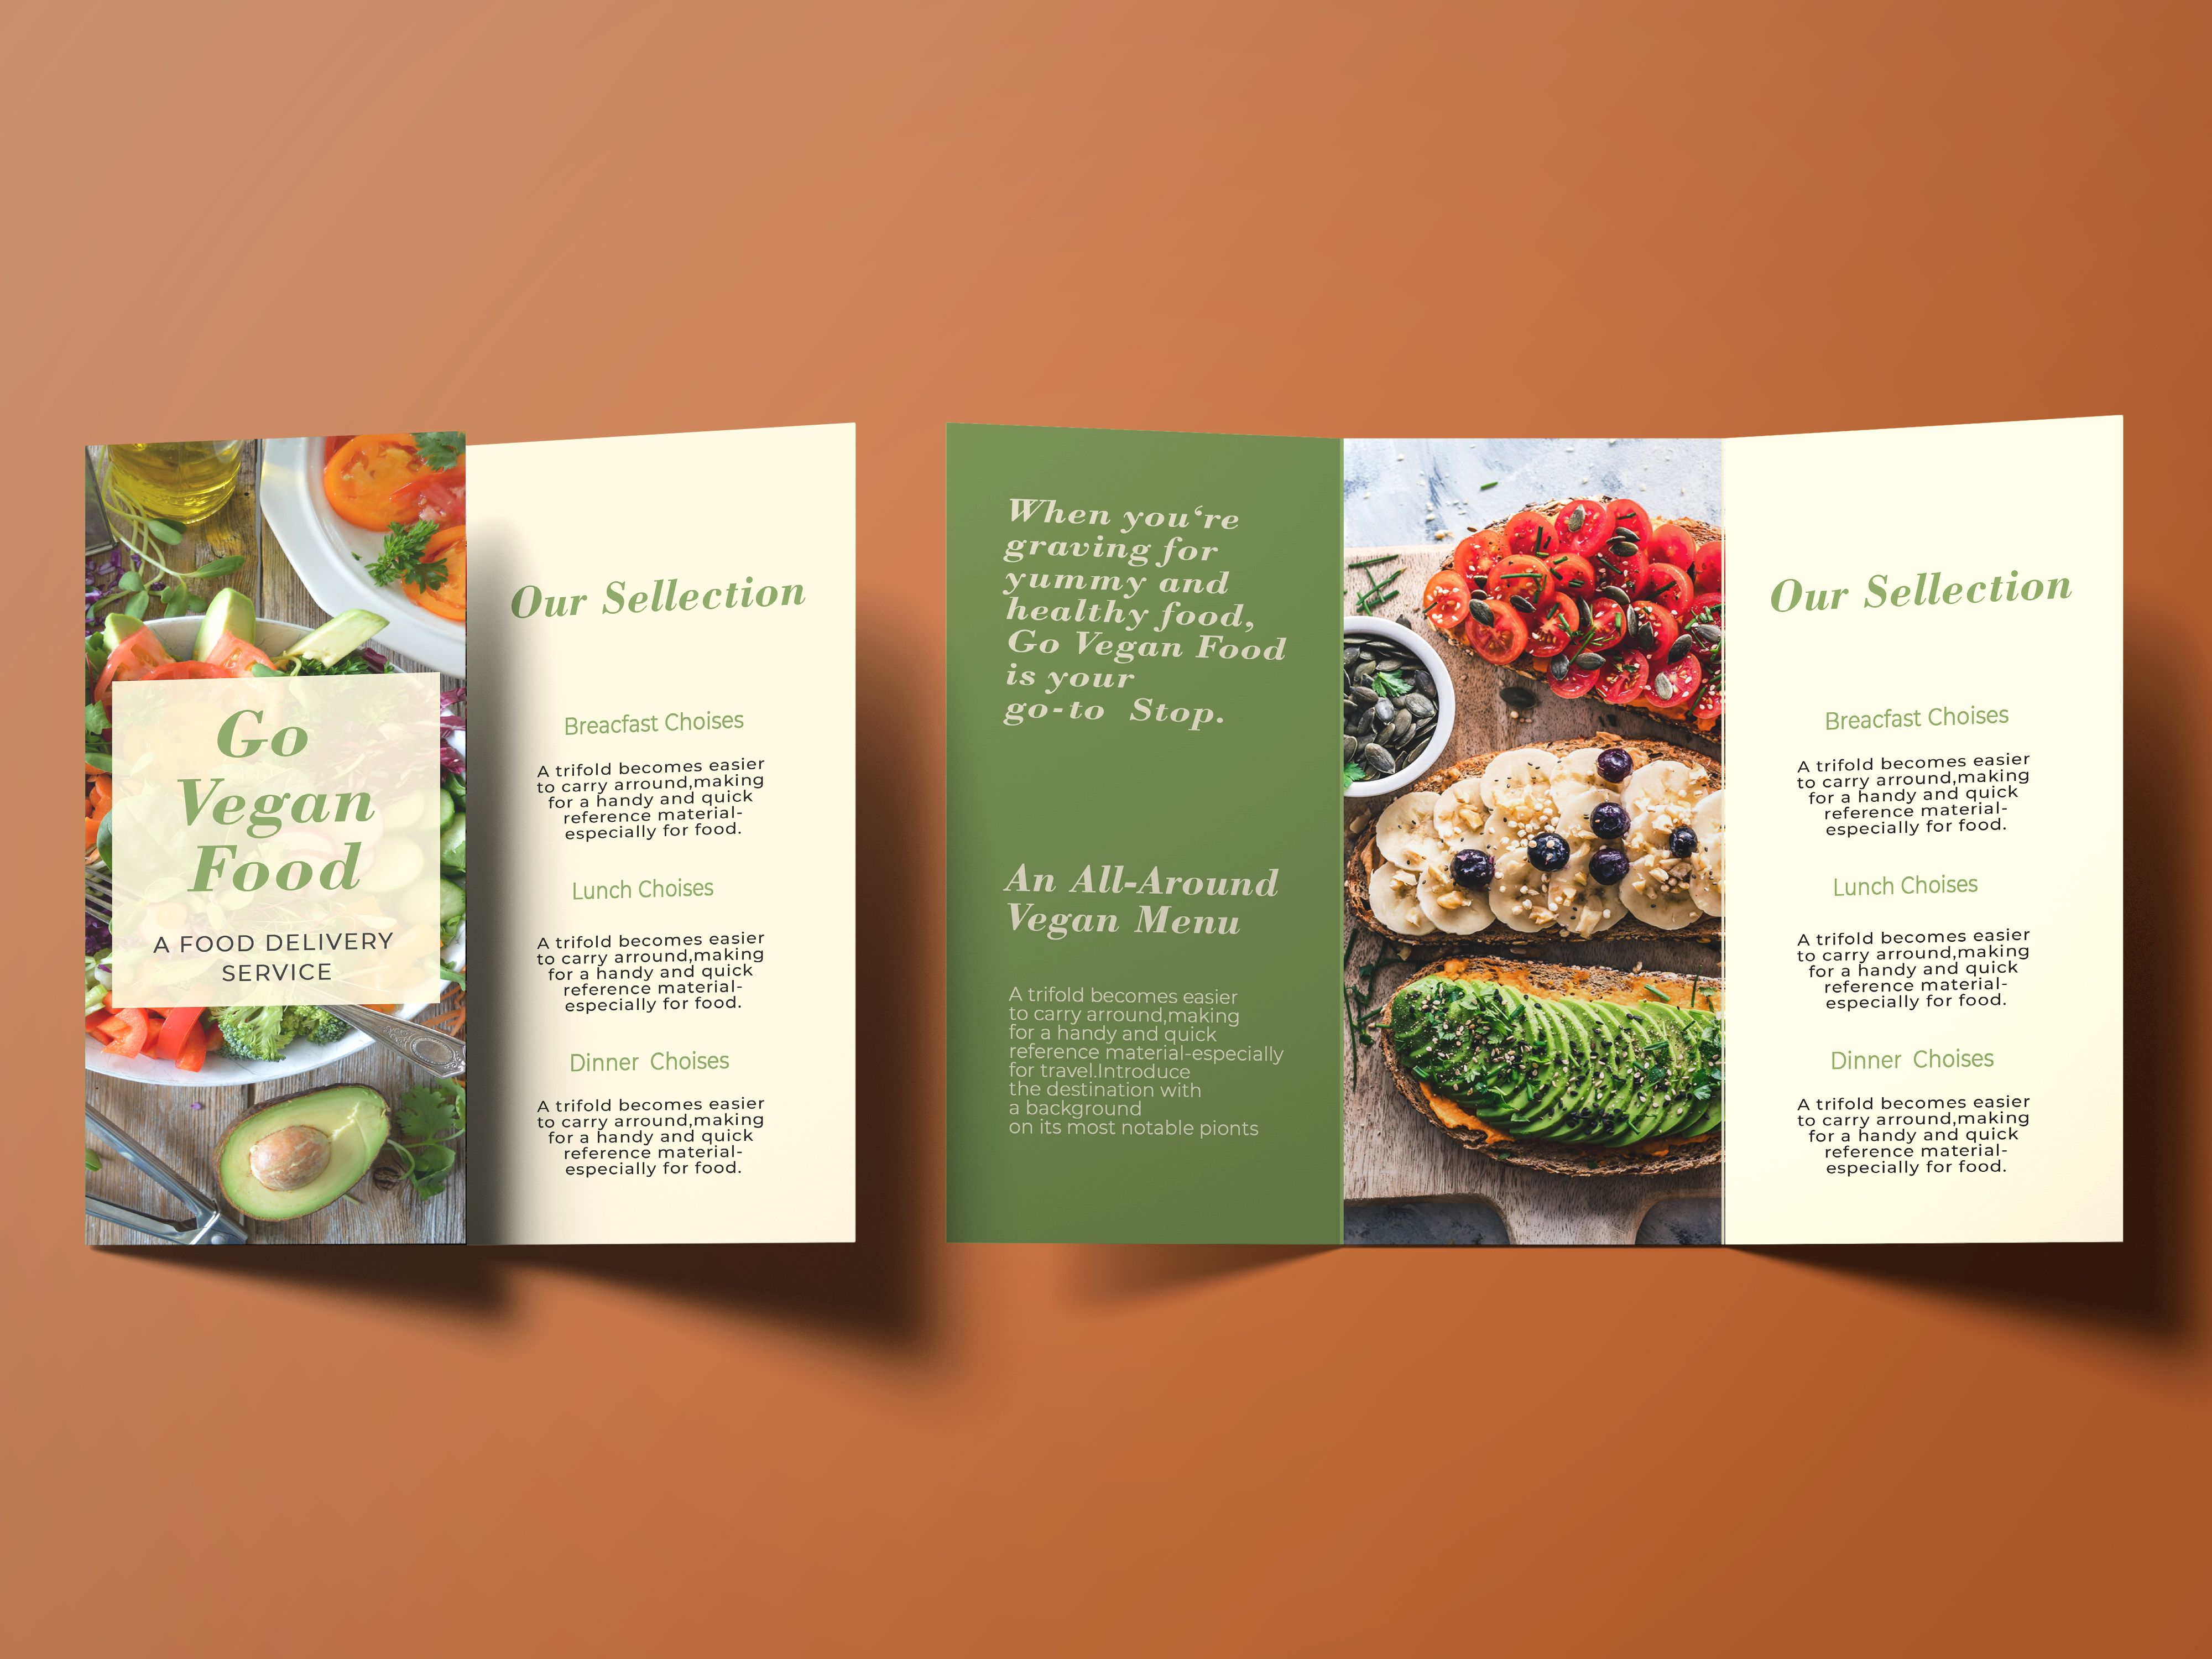 Trifold Vegan Food Brochure - 2 Templates Screenshot 4